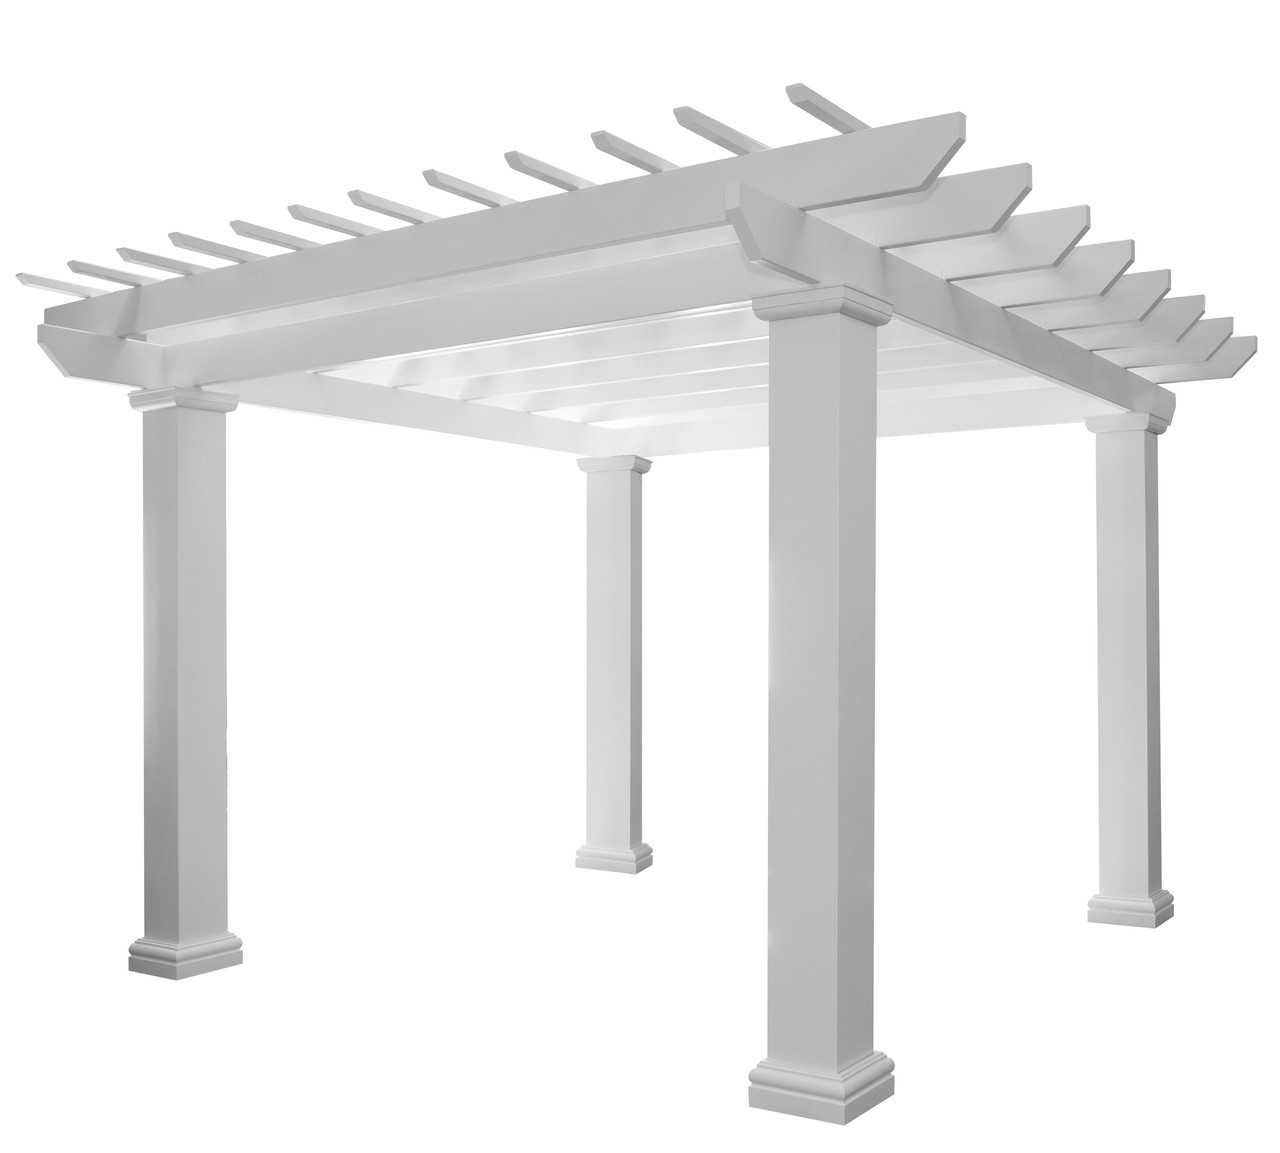 "The Avondale Fiberglass pergola kit ships in one week, features Napa Style rafter tails, and 10"" square posts 8ft tall. Available in Standard White Color. This is a fiberglass-resin composite material warrantied for life. Available in 12x12, 14x14, and 16x16 sizes."